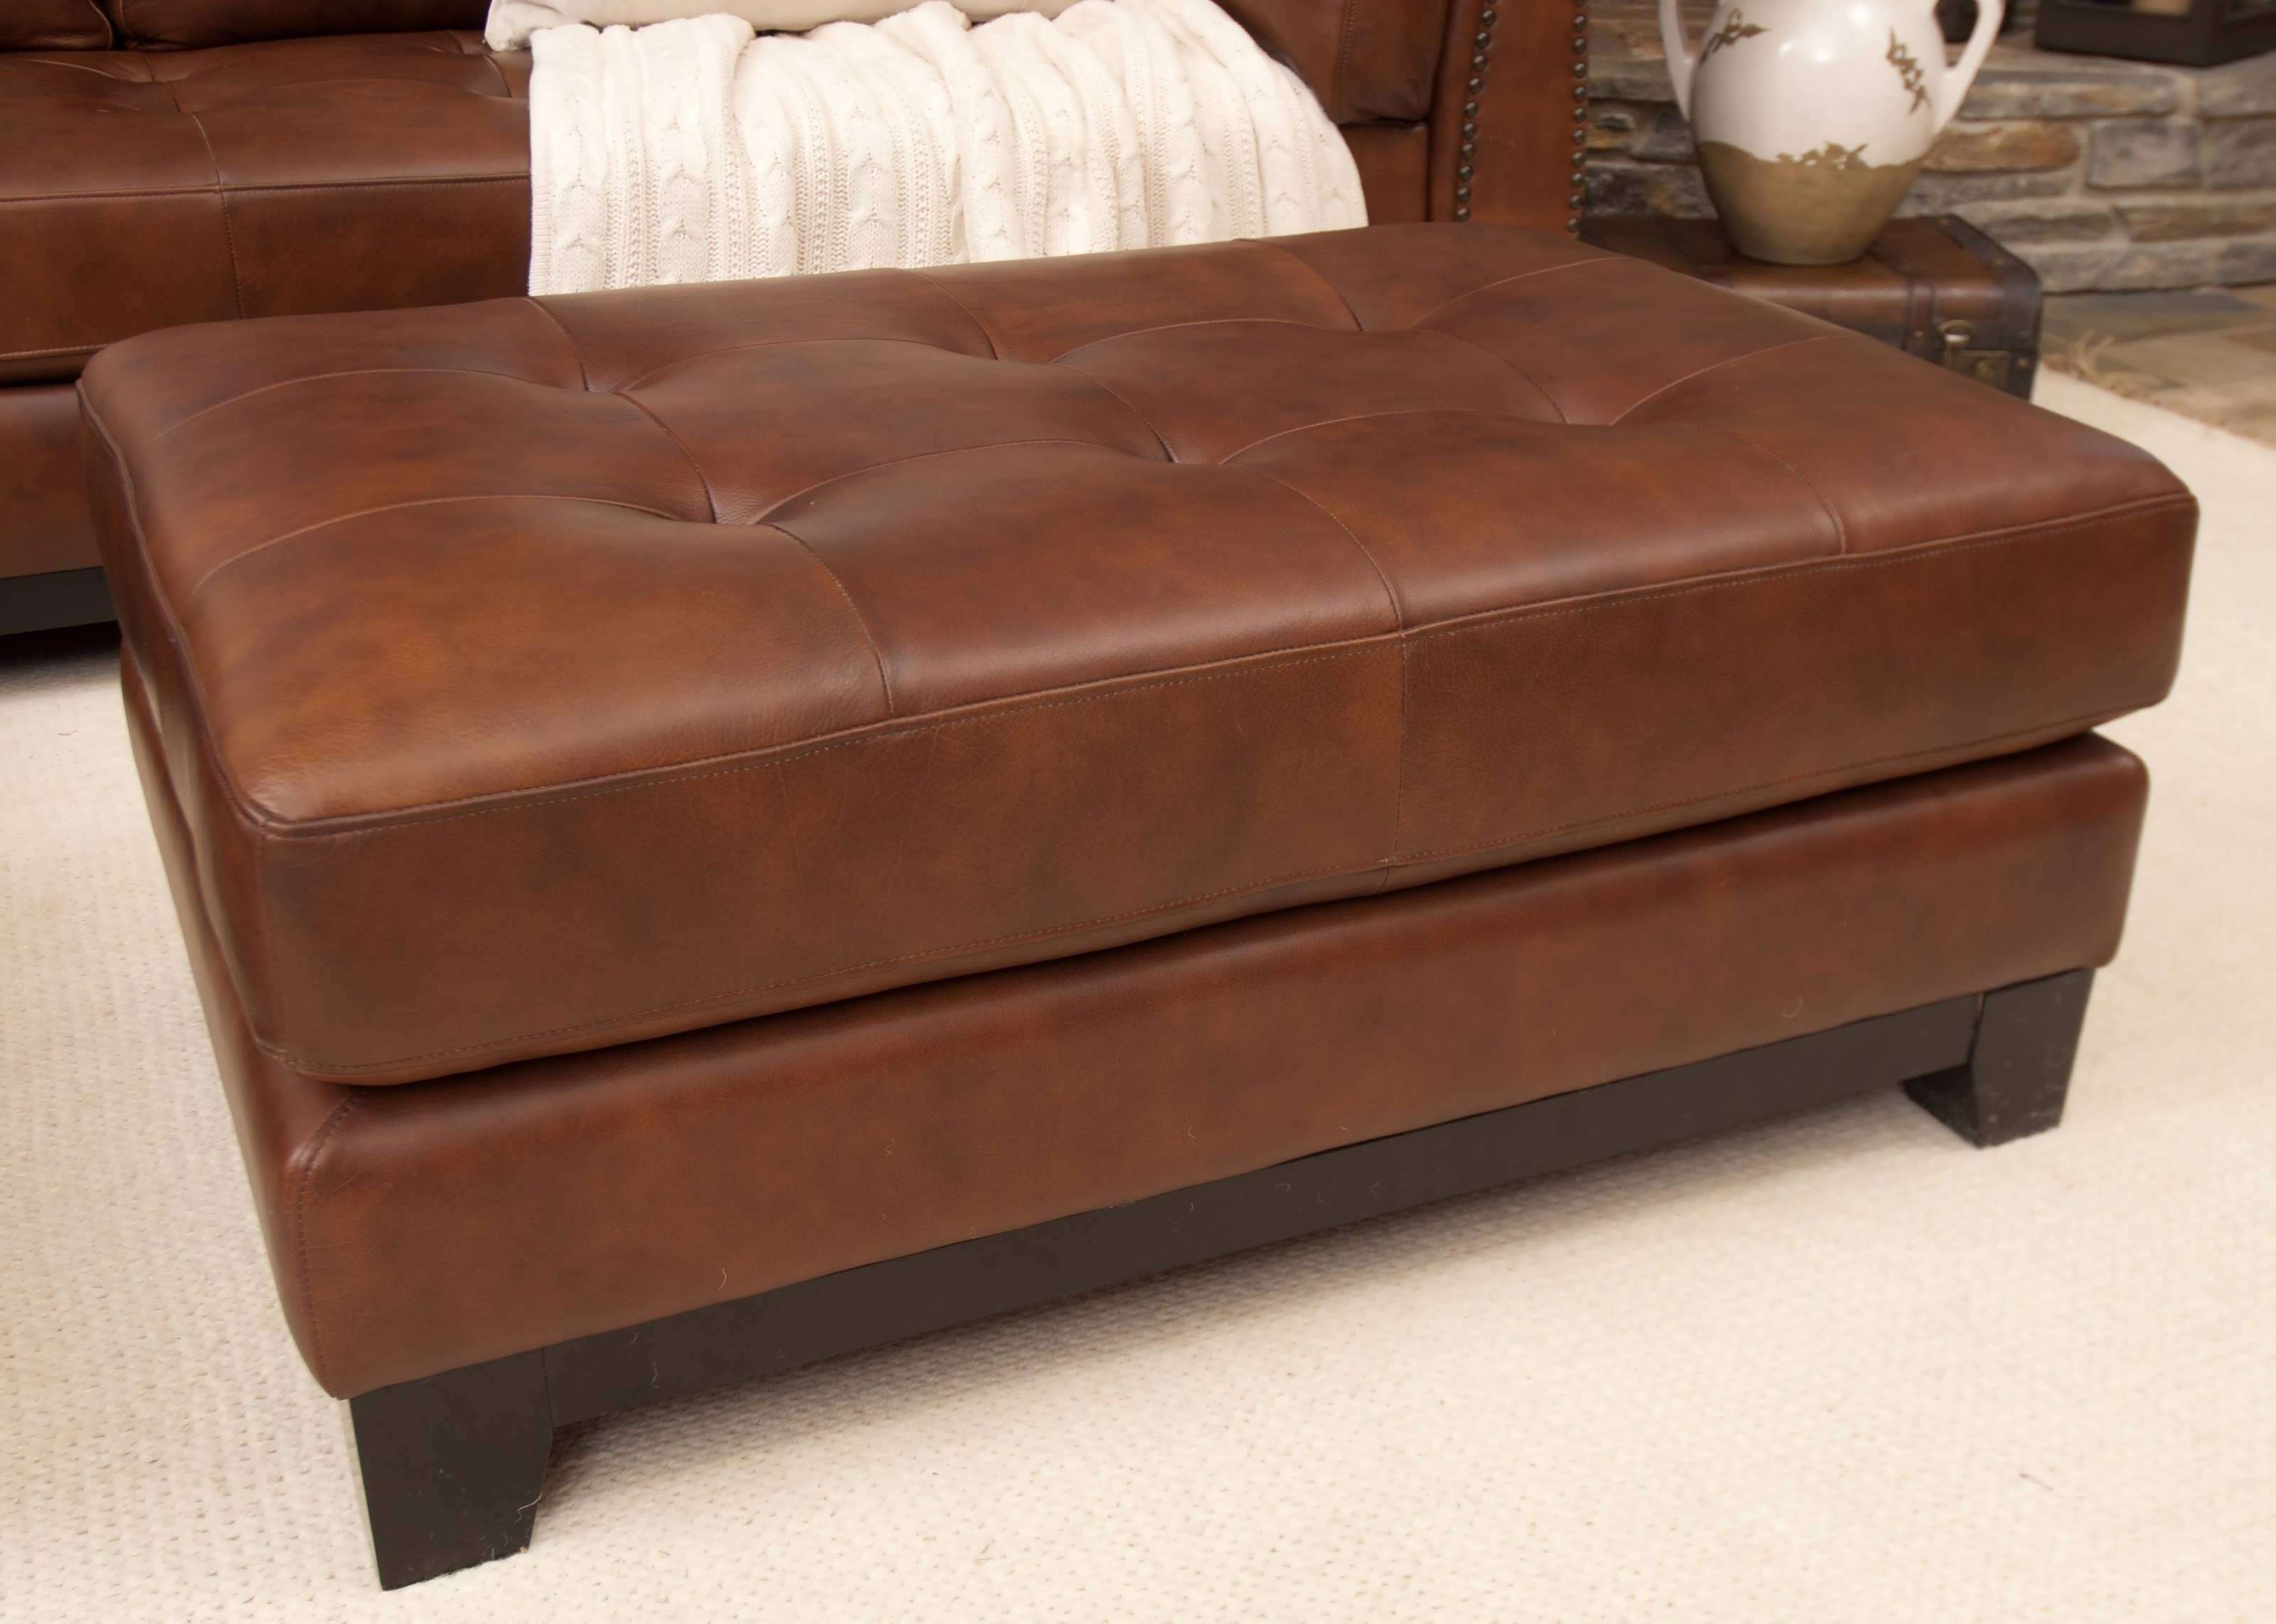 Favorite Leopard Ottoman Coffee Tables Within Amazing Leopard Ottoman Coffee Table – Mediasupload (View 9 of 20)